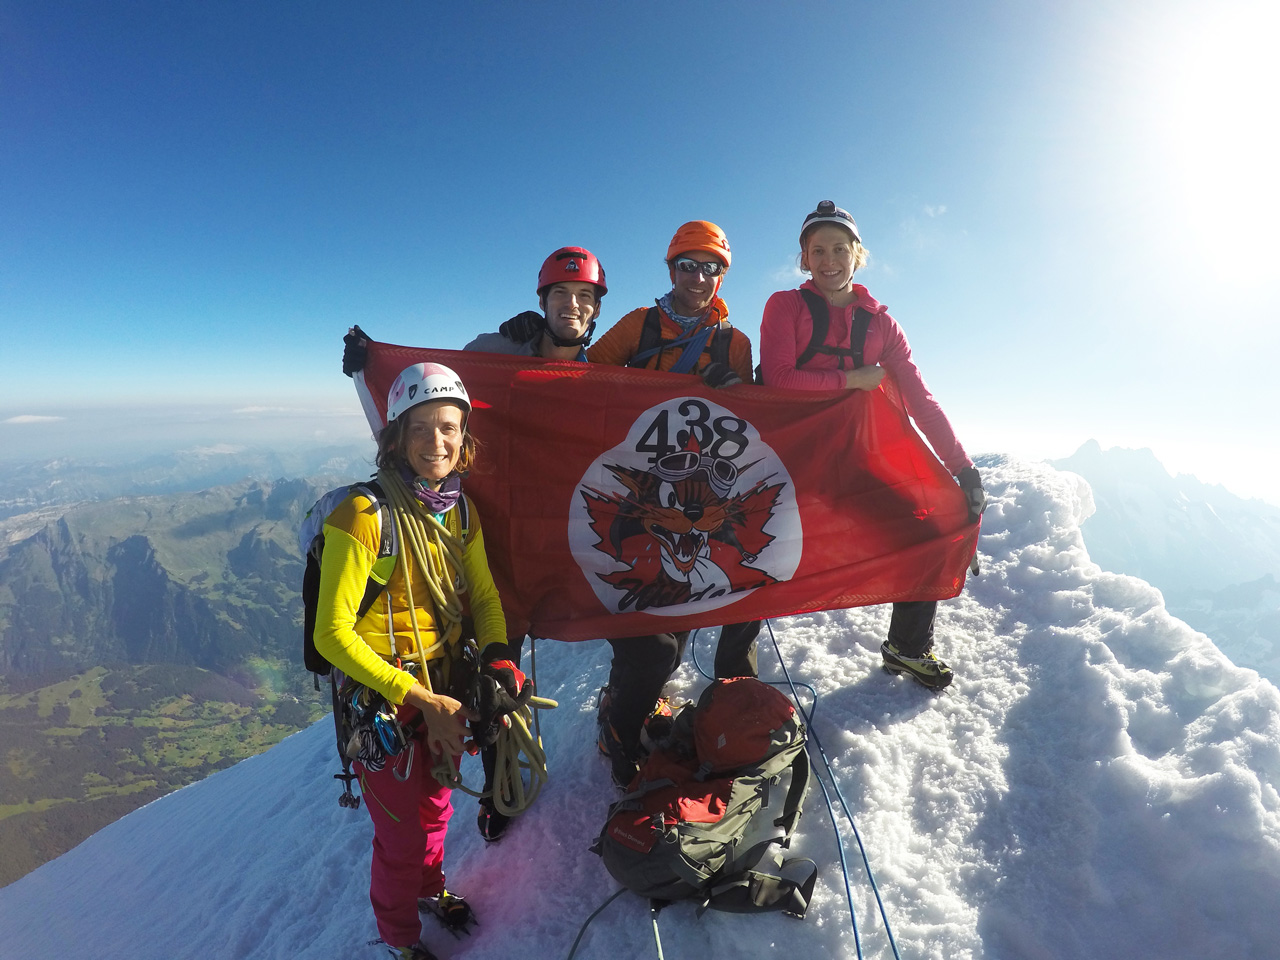 Stéphanie Maureau, Antoine Labranche, Guillaume Omont and Alina Zagaytova, holding the 438 ETAH flag at the summit of the Eiger